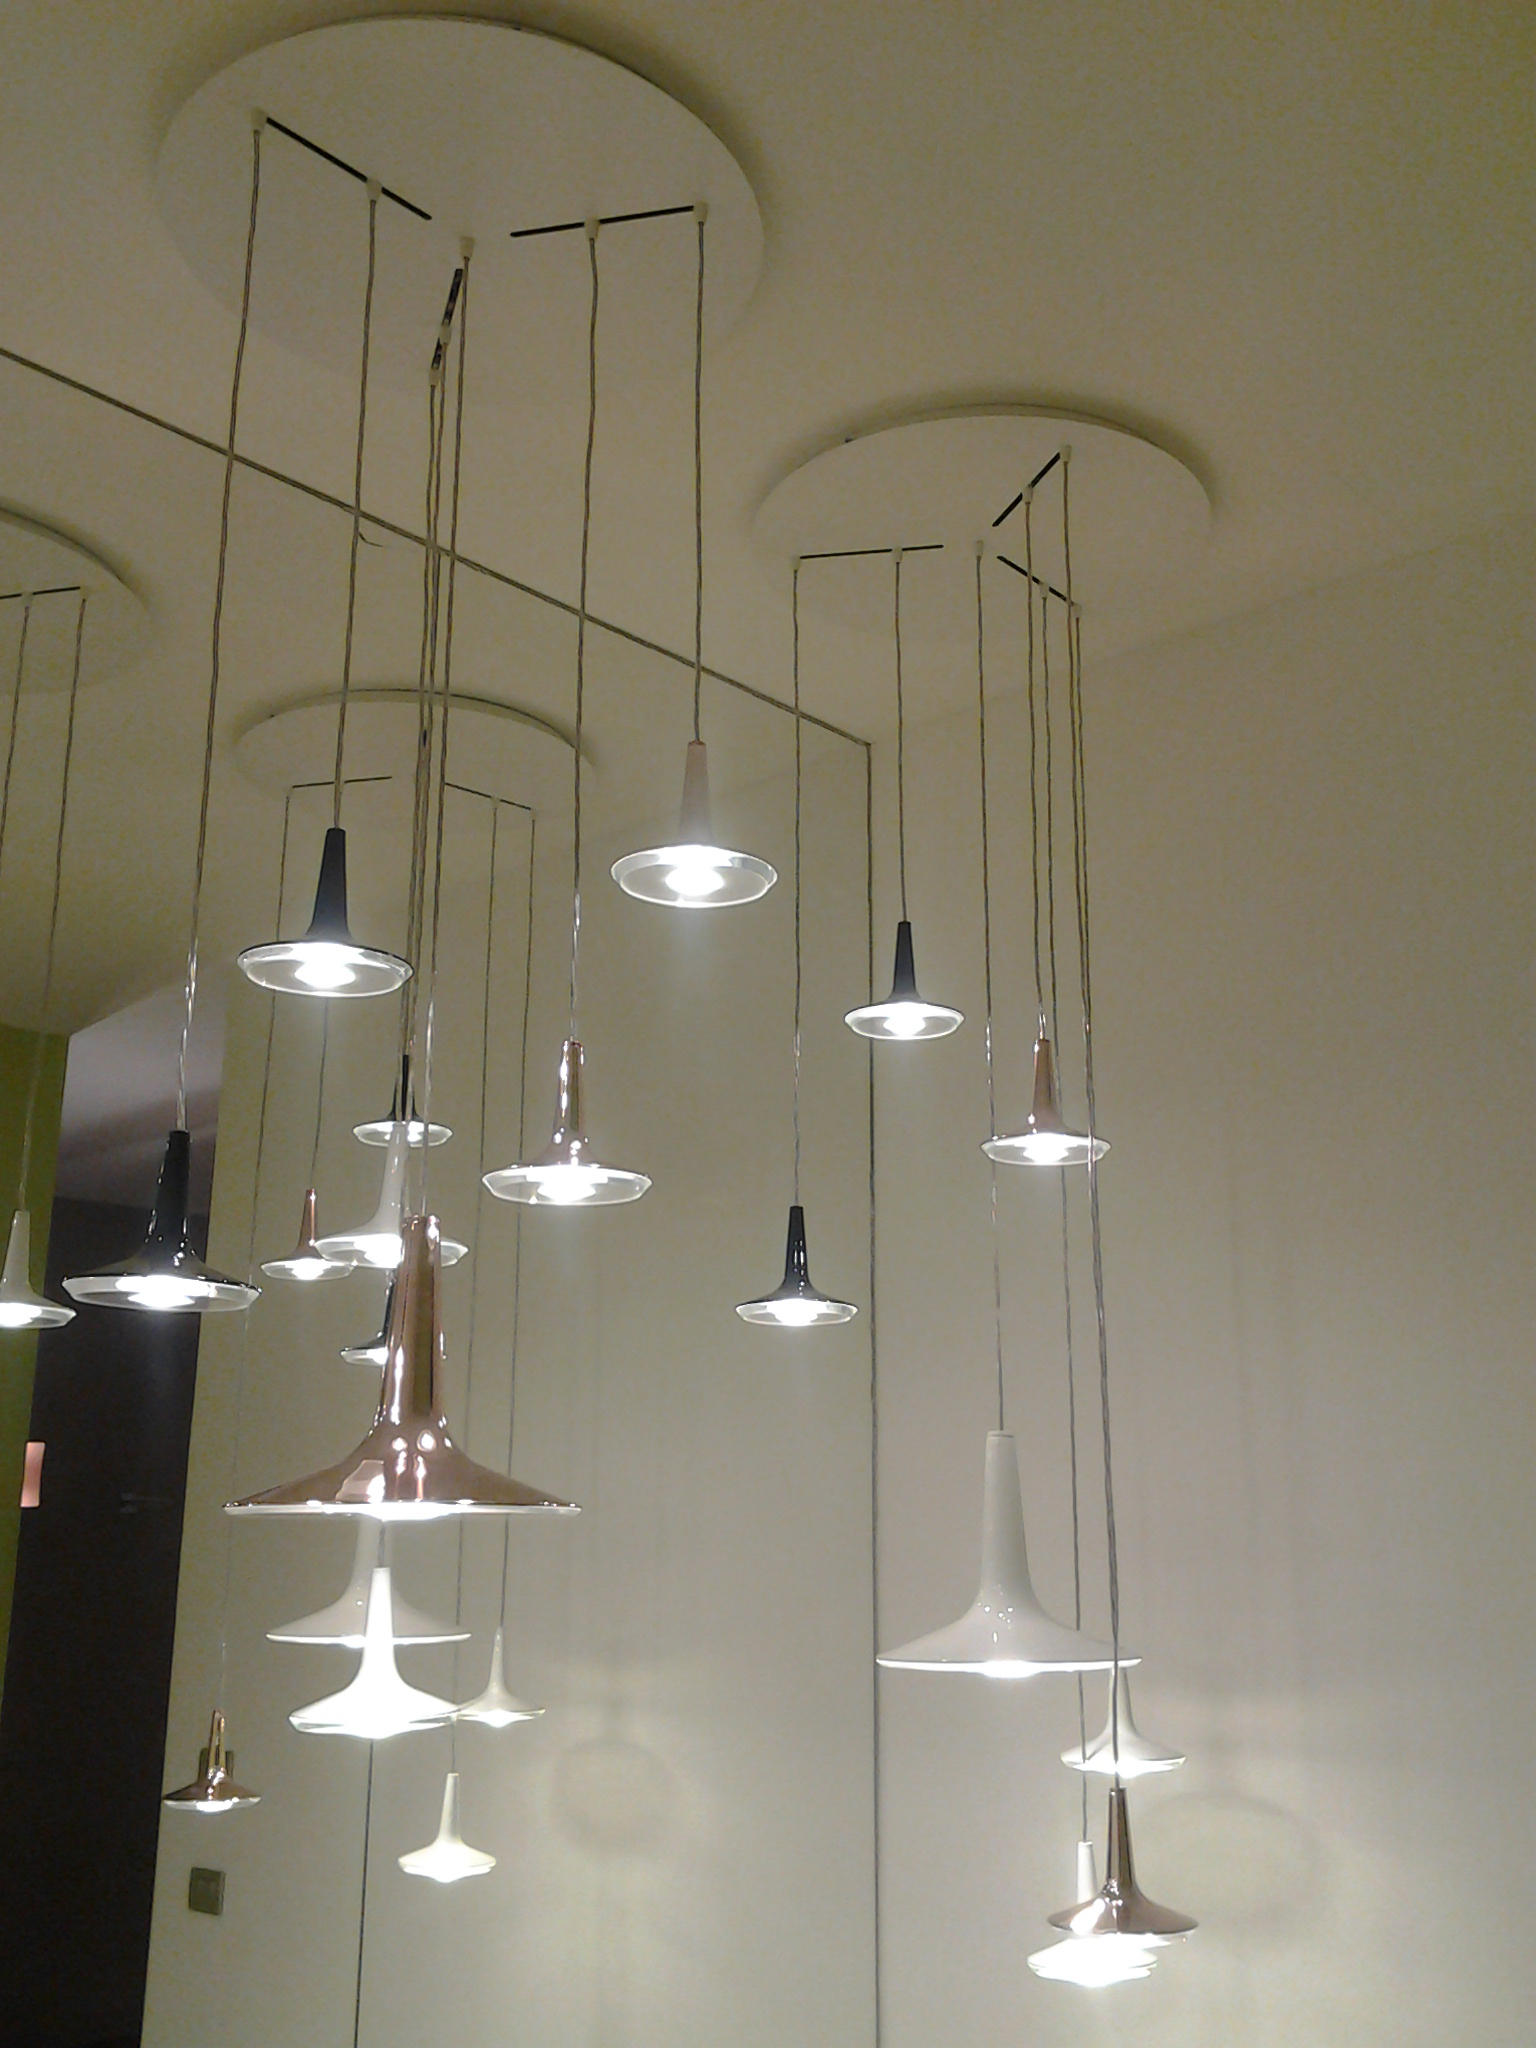 Kin 478 Suspended Lights From Oluce Architonic